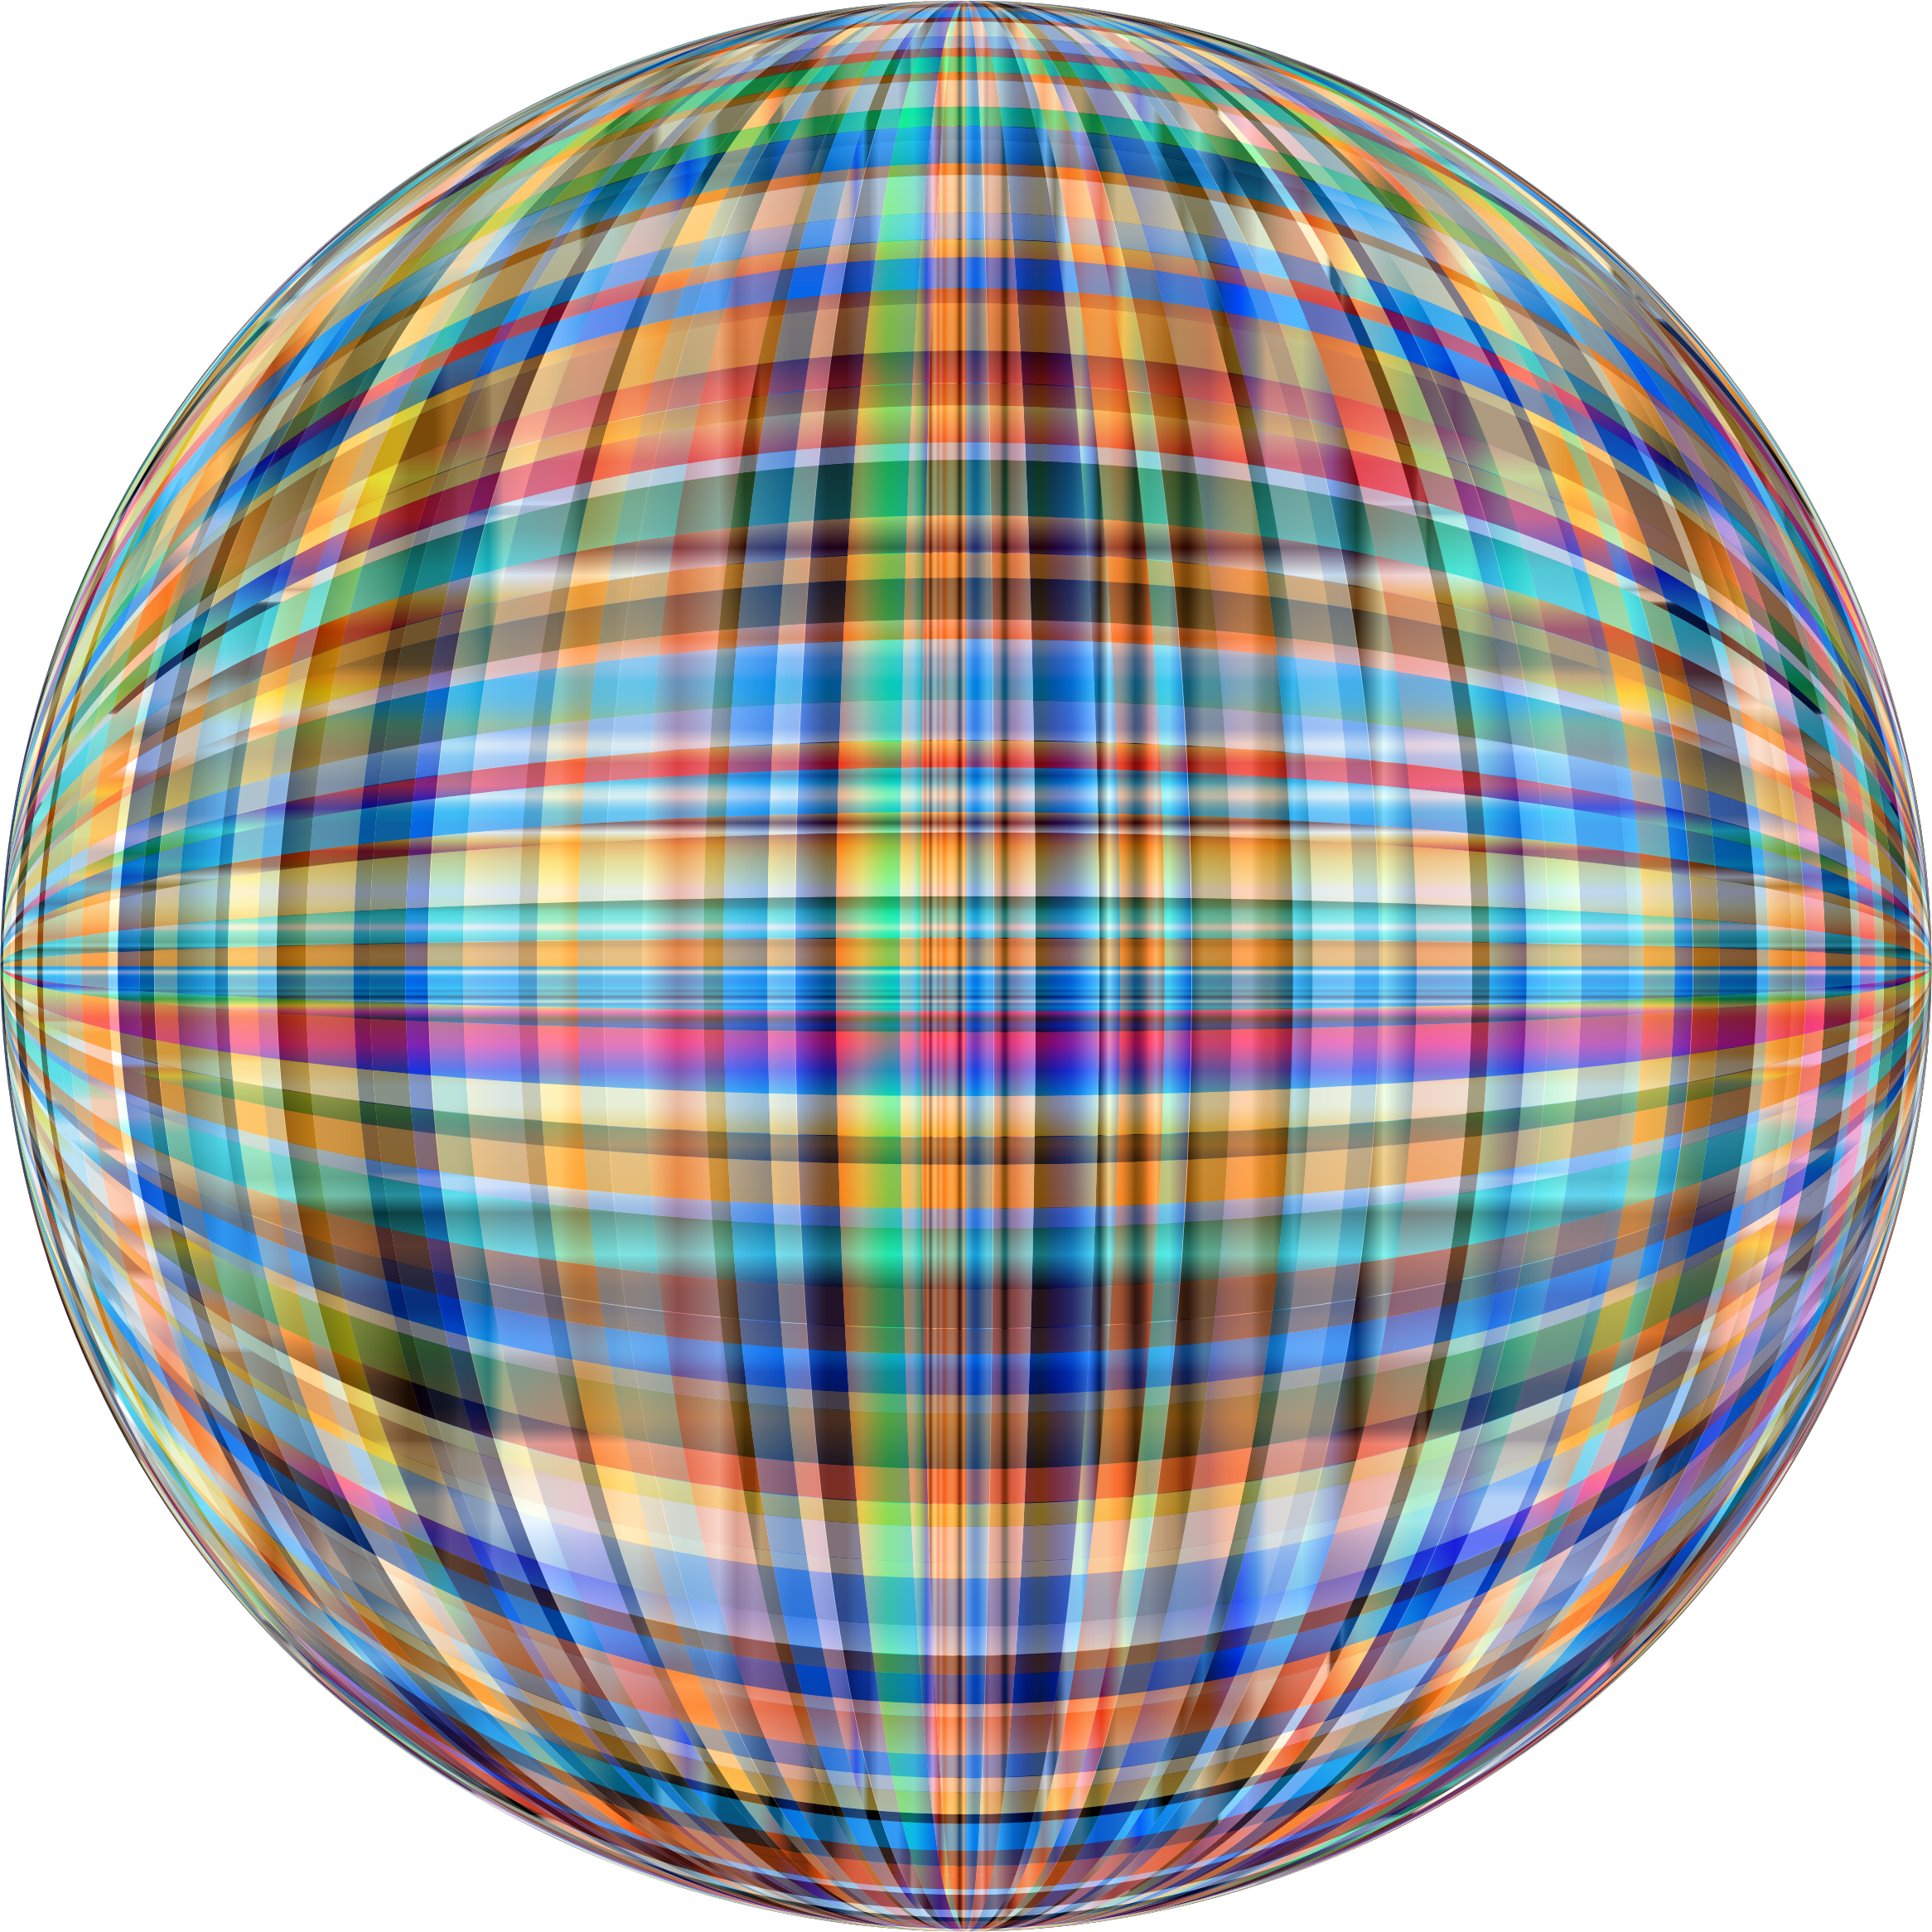 Chromatic Spectral Orb by GDJ